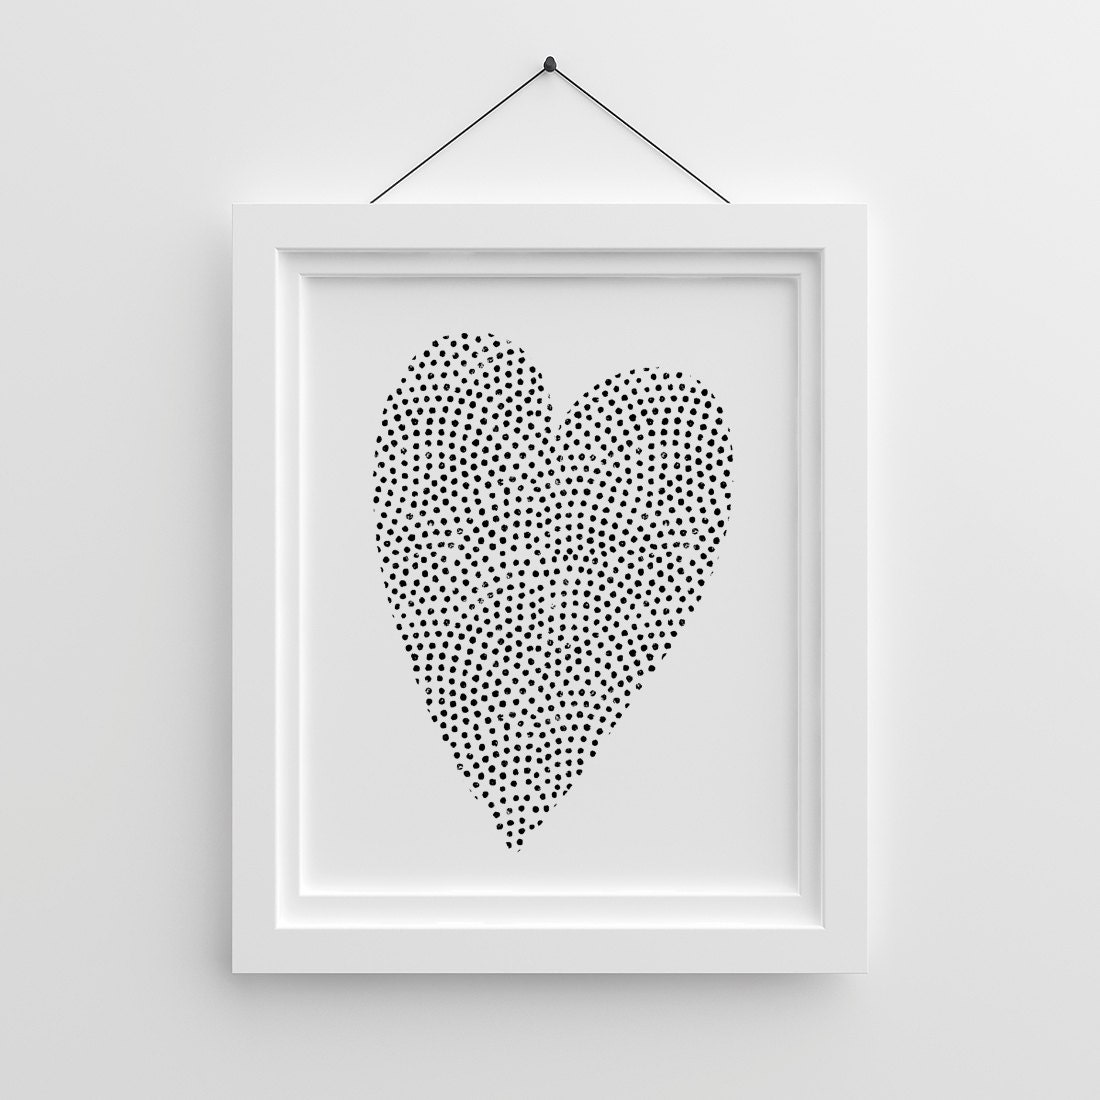 Black And White Nursery Wall Decor : Children wall decor black and white nursery print modern